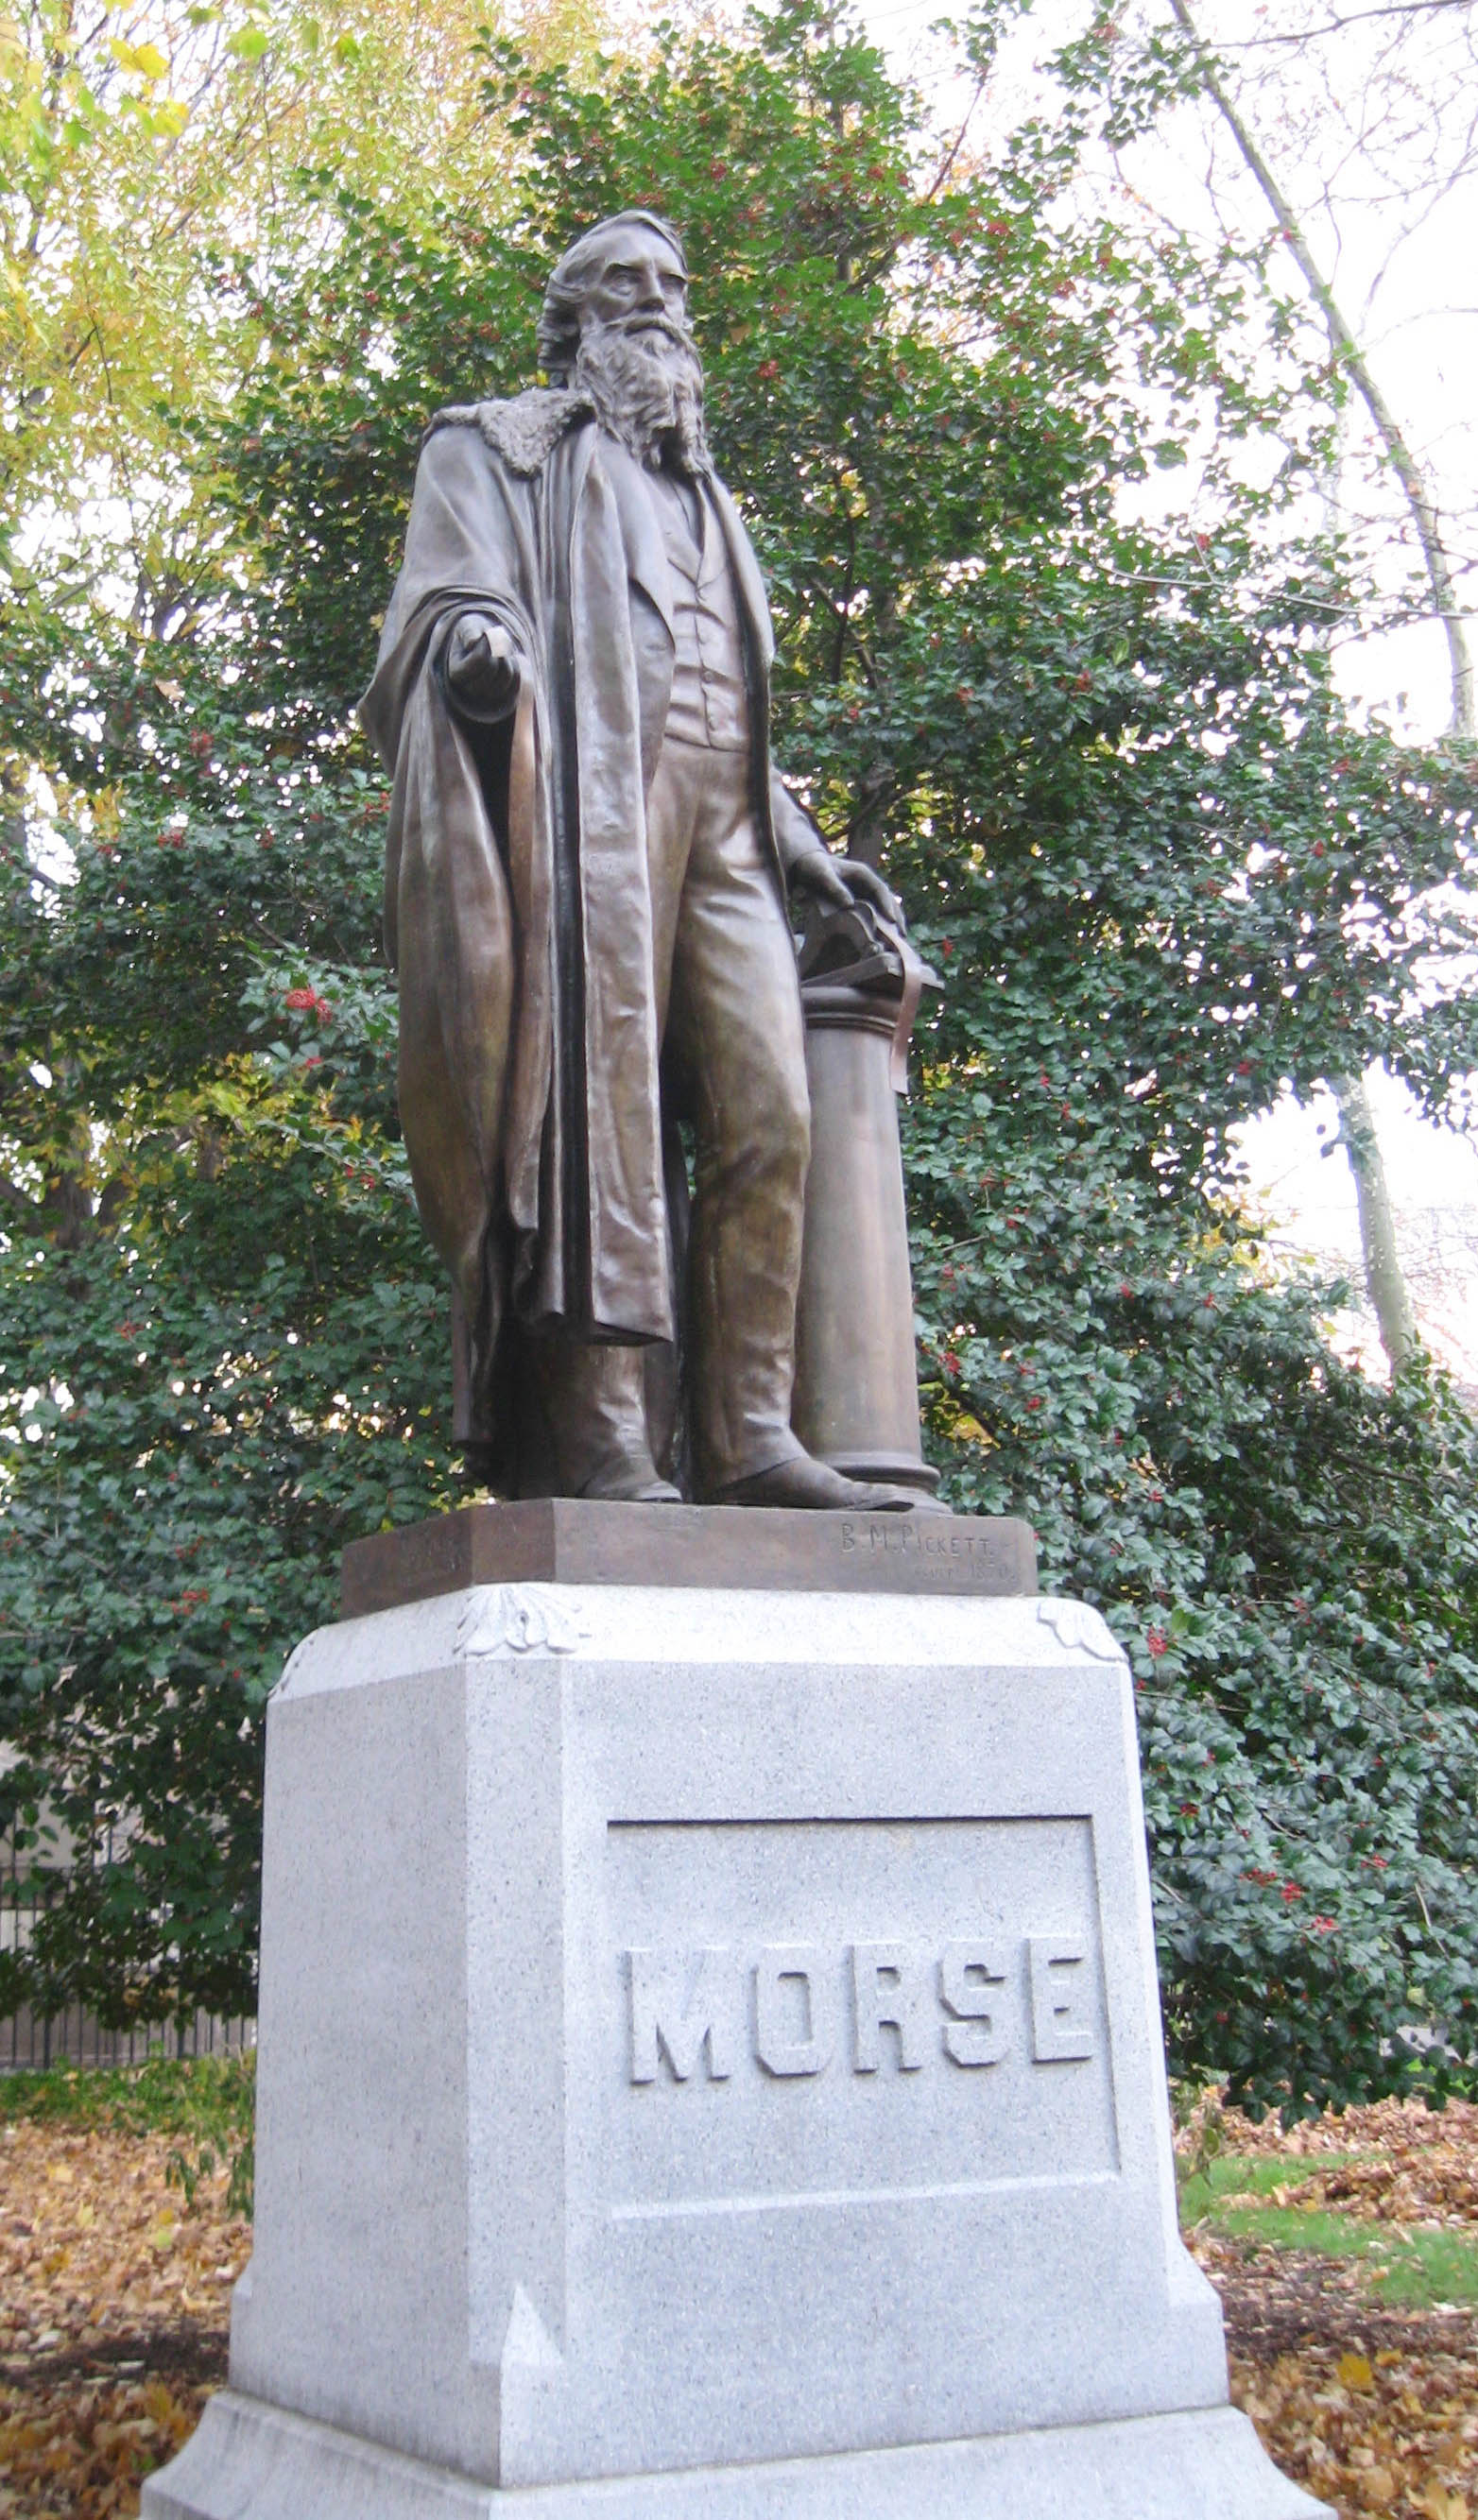 Statue of Morse in Central Park, New York